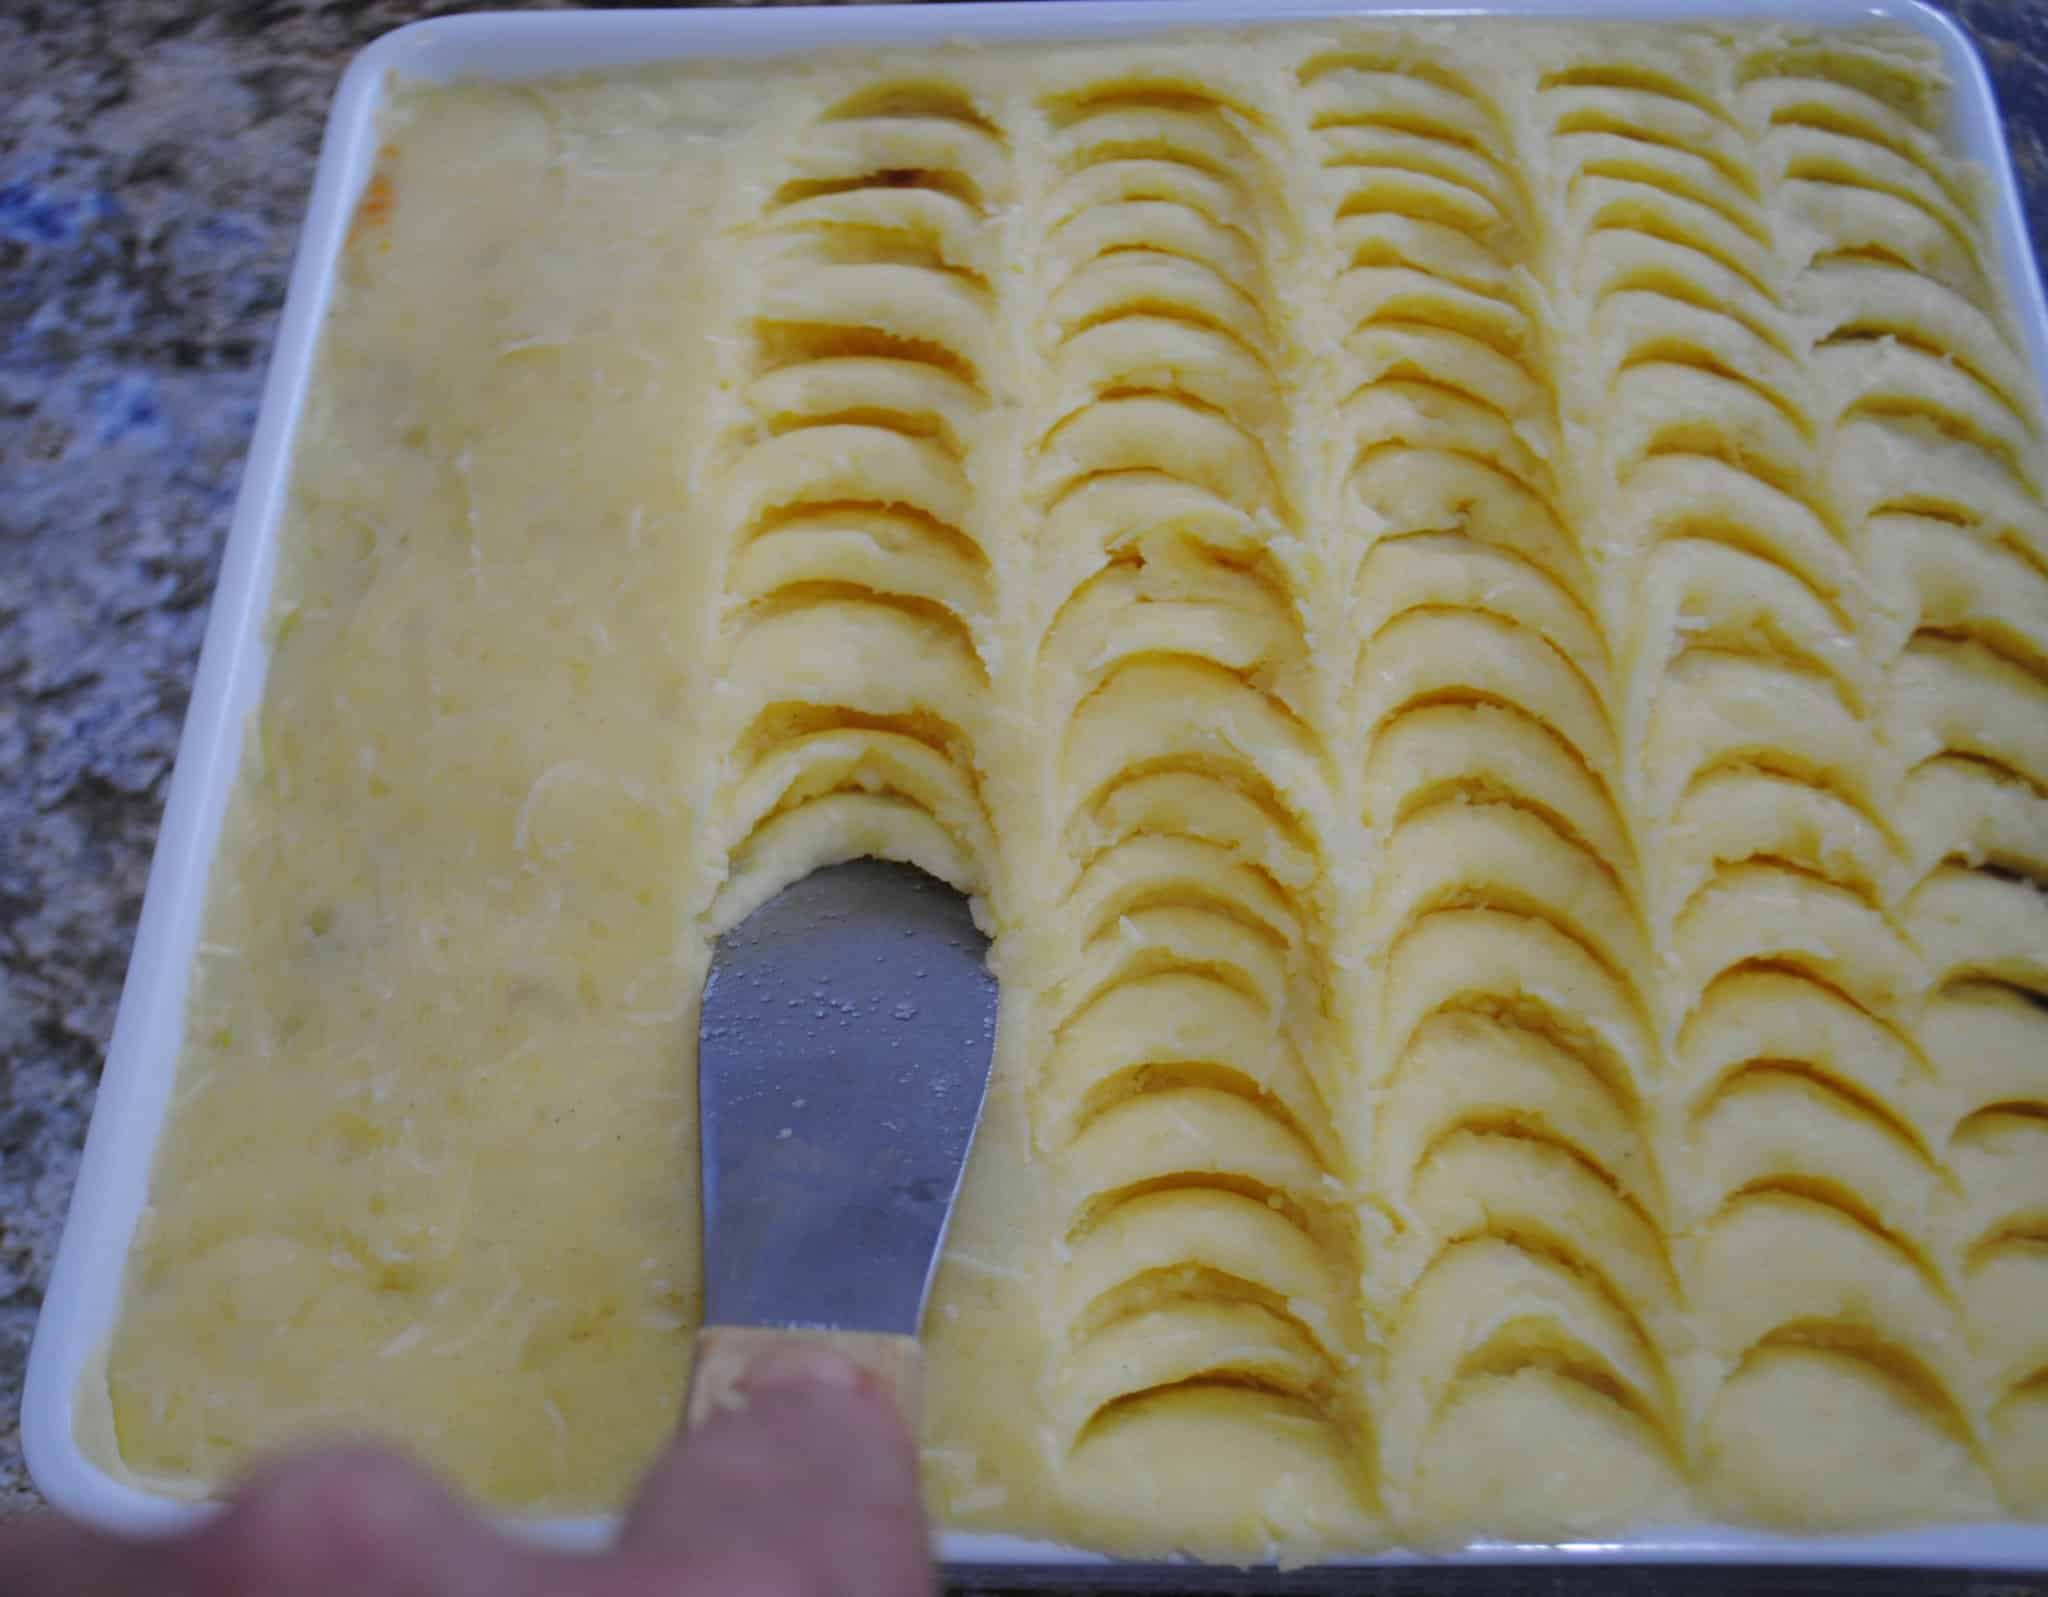 Shepherds pie - decorating the potatoes with the end of a palette knife